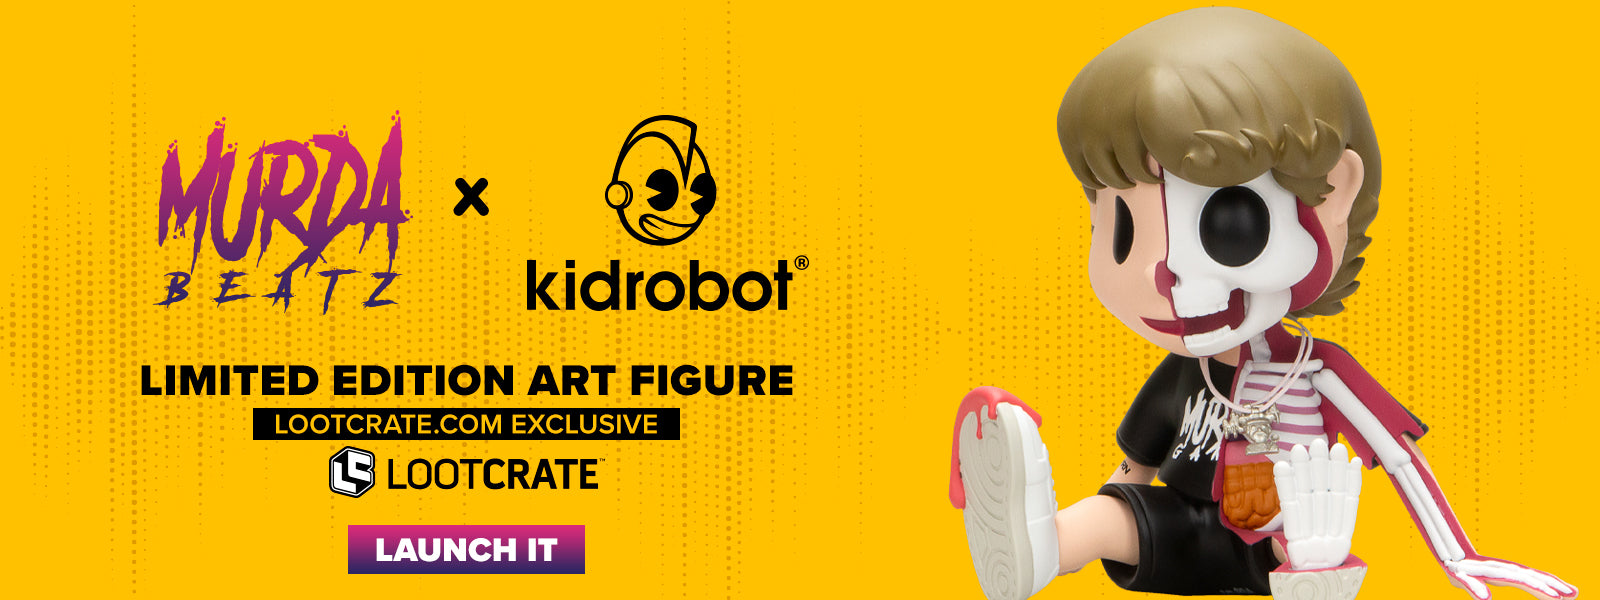 "Limited Edition Murda Beatz x Kidrobot 8"" Figure Now Available at Lootcrate"